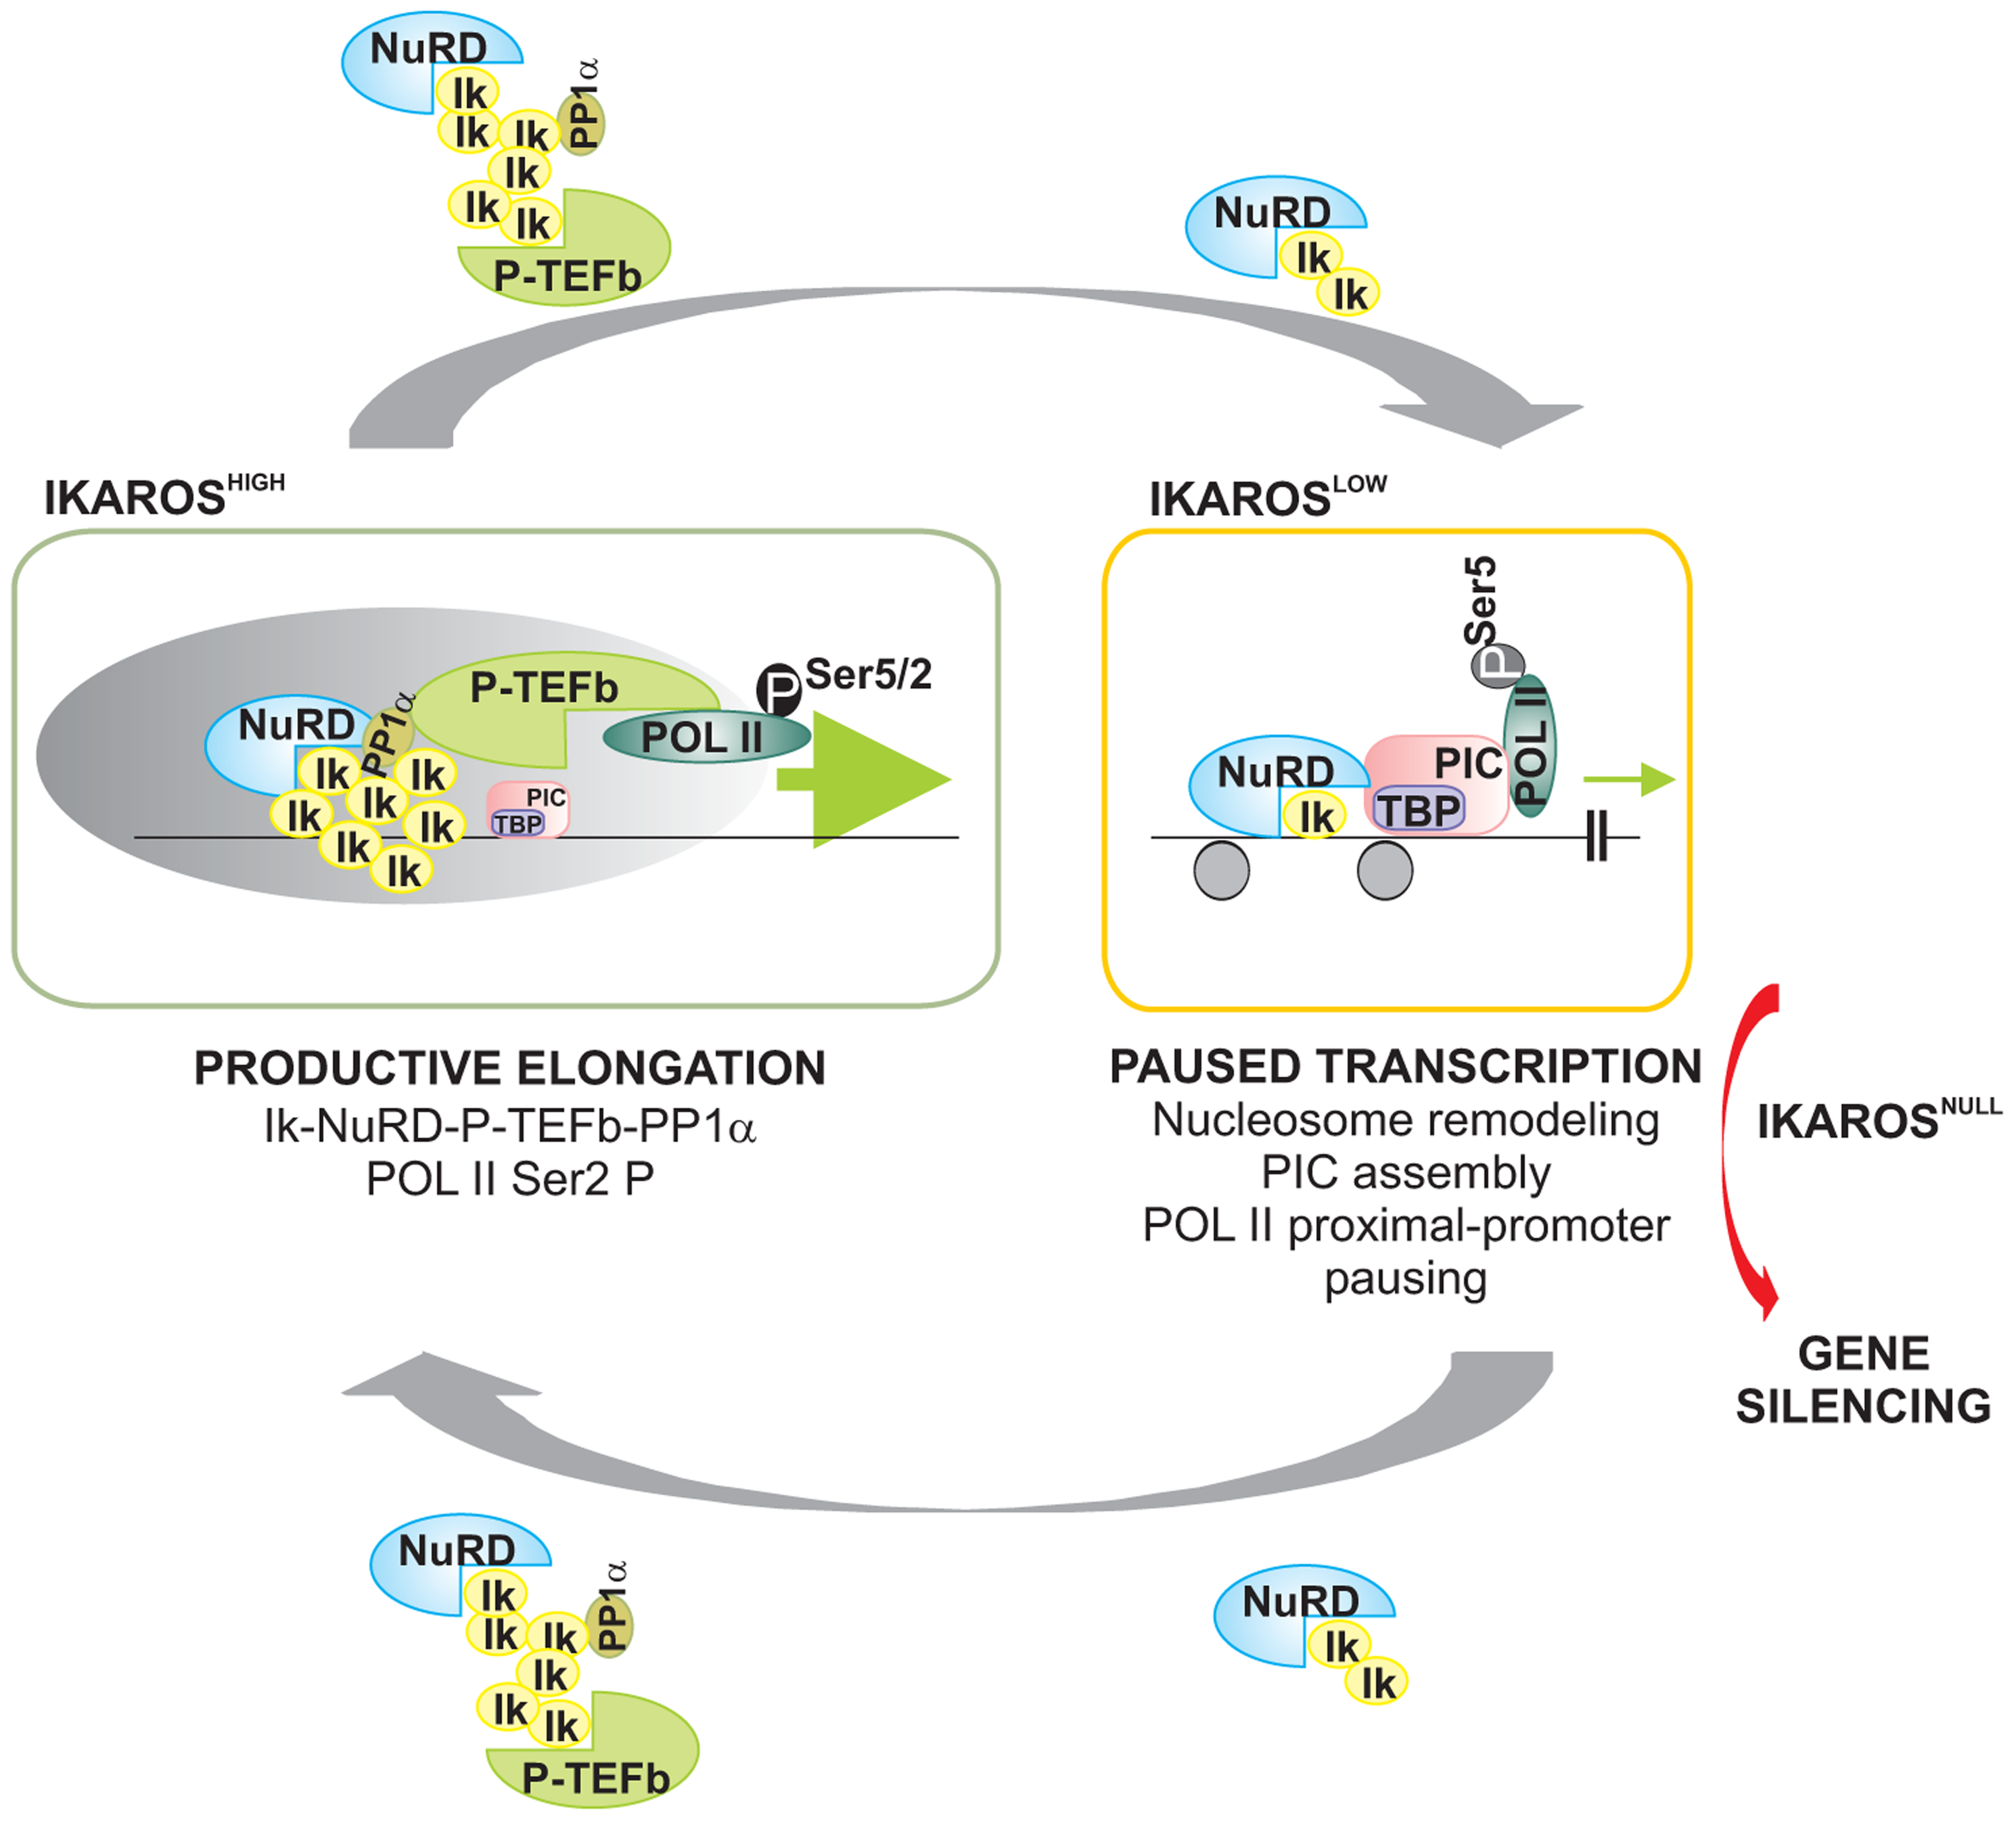 Model of IKAROS dosage effect for formation and recruitment of the NuRD-P-TEFb complex and transcription elongation control of IKAROS-target genes.